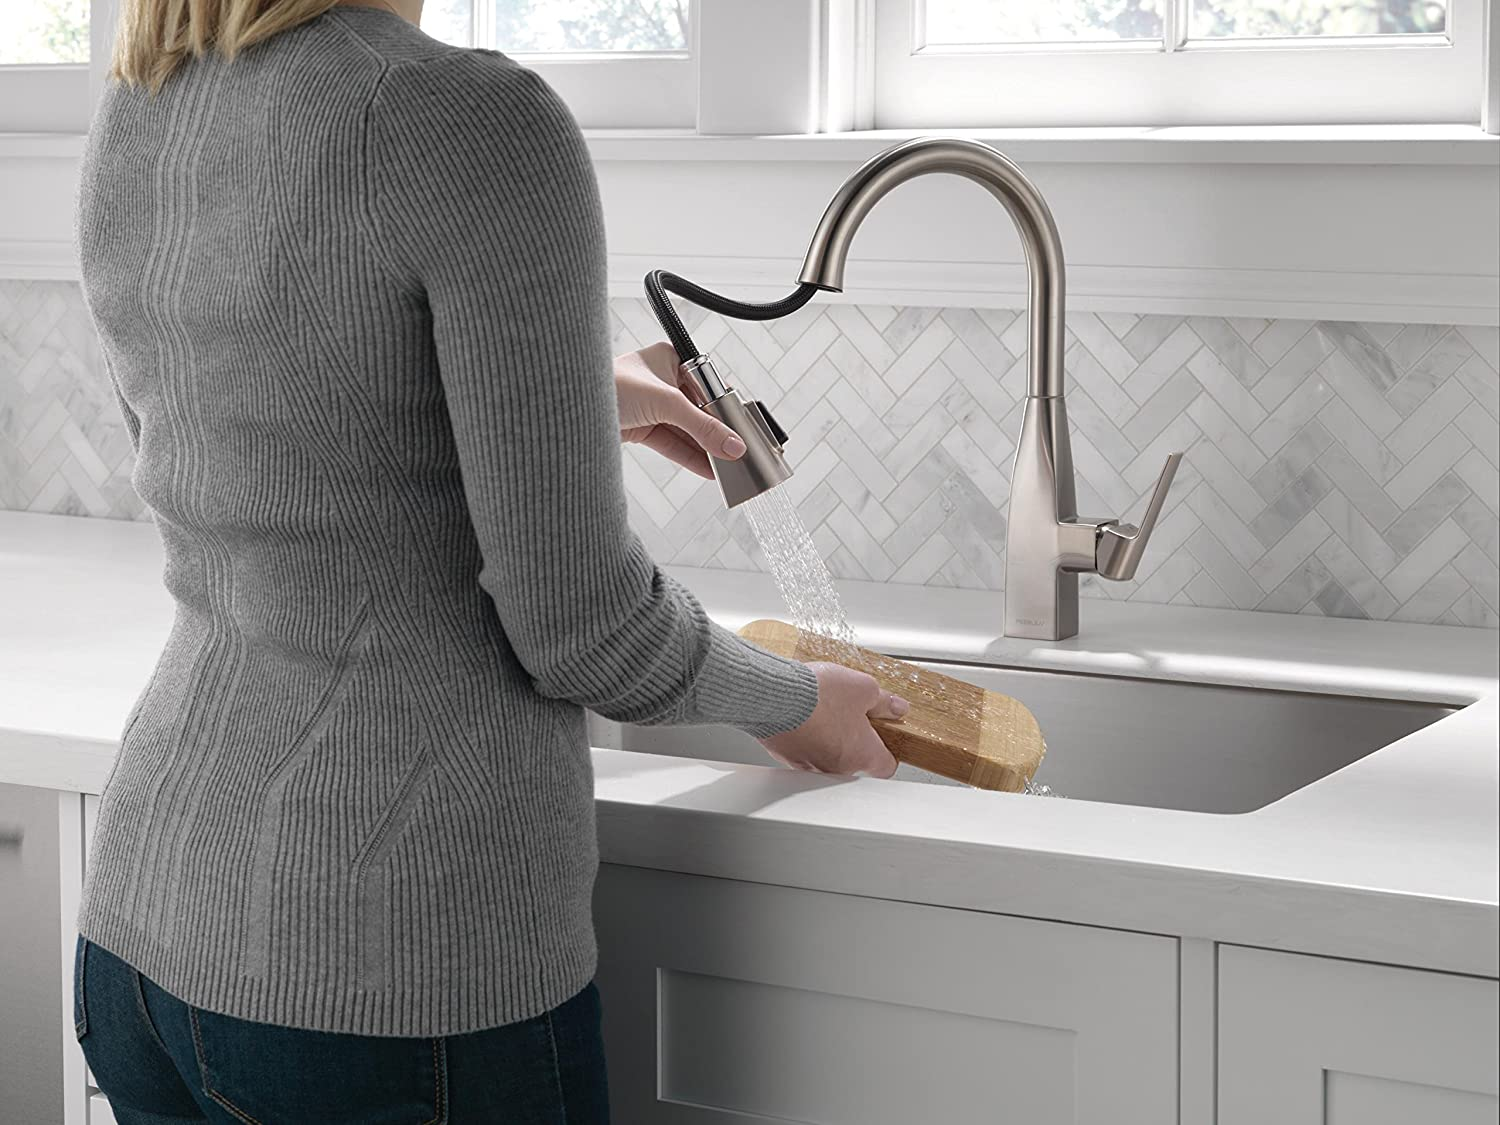 peerless kitchen faucet reviews